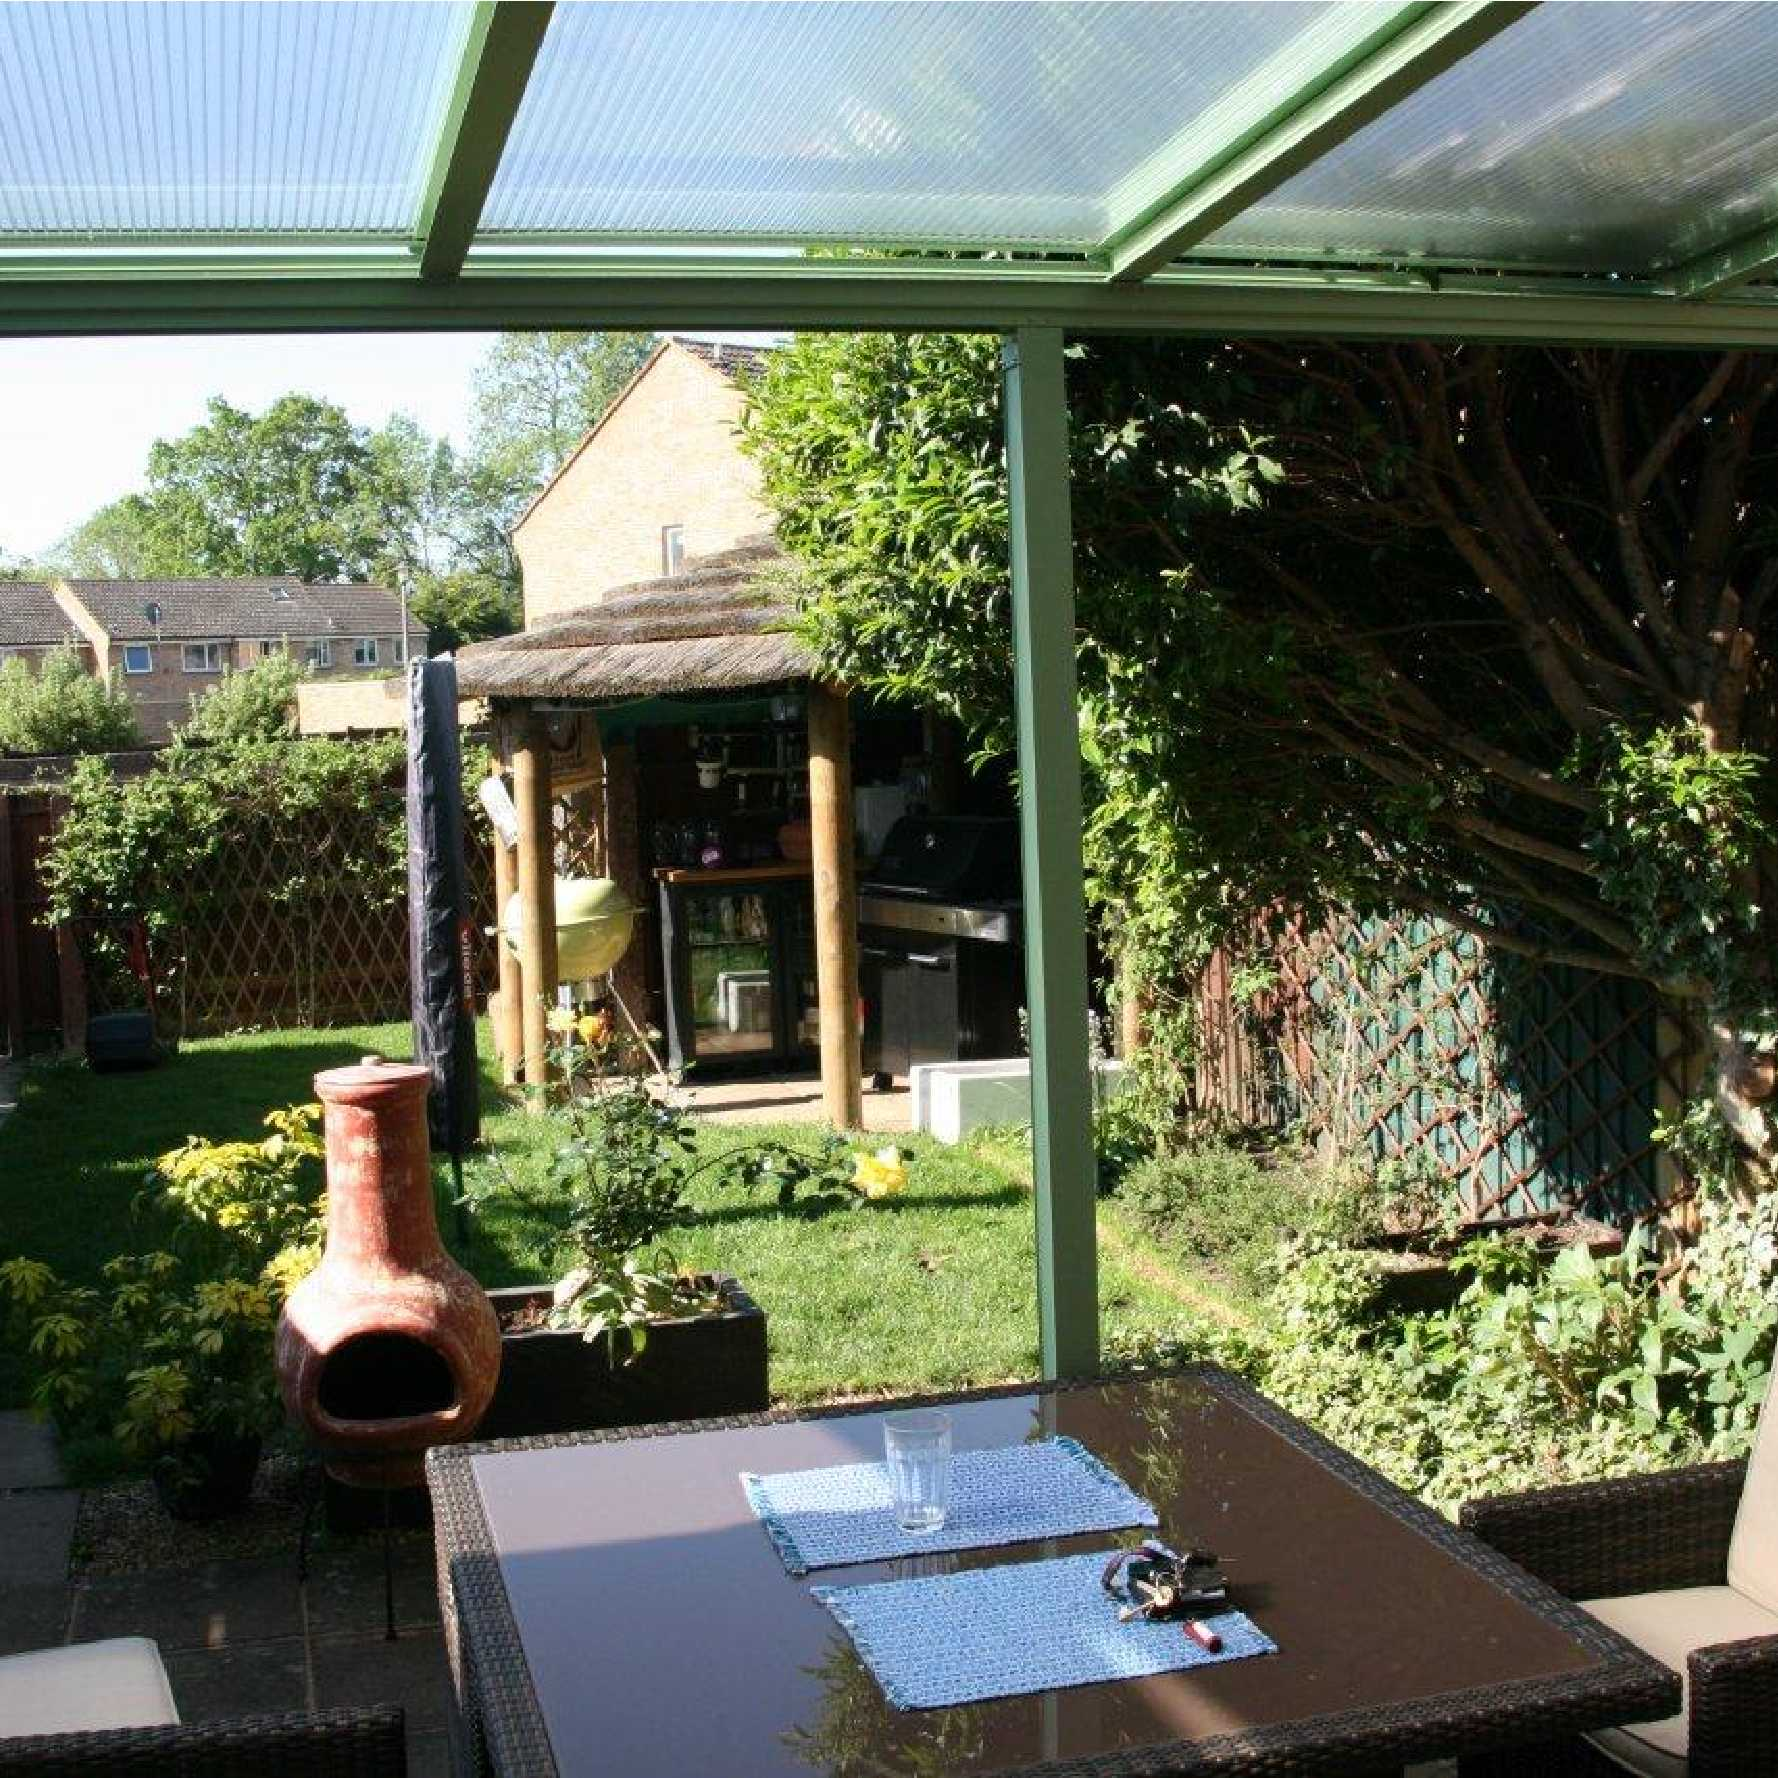 Affordable Omega Smart White Lean-To Canopy with 16mm Polycarbonate Glazing - 7.4m (W) x 2.0m (P), (4) Supporting Posts